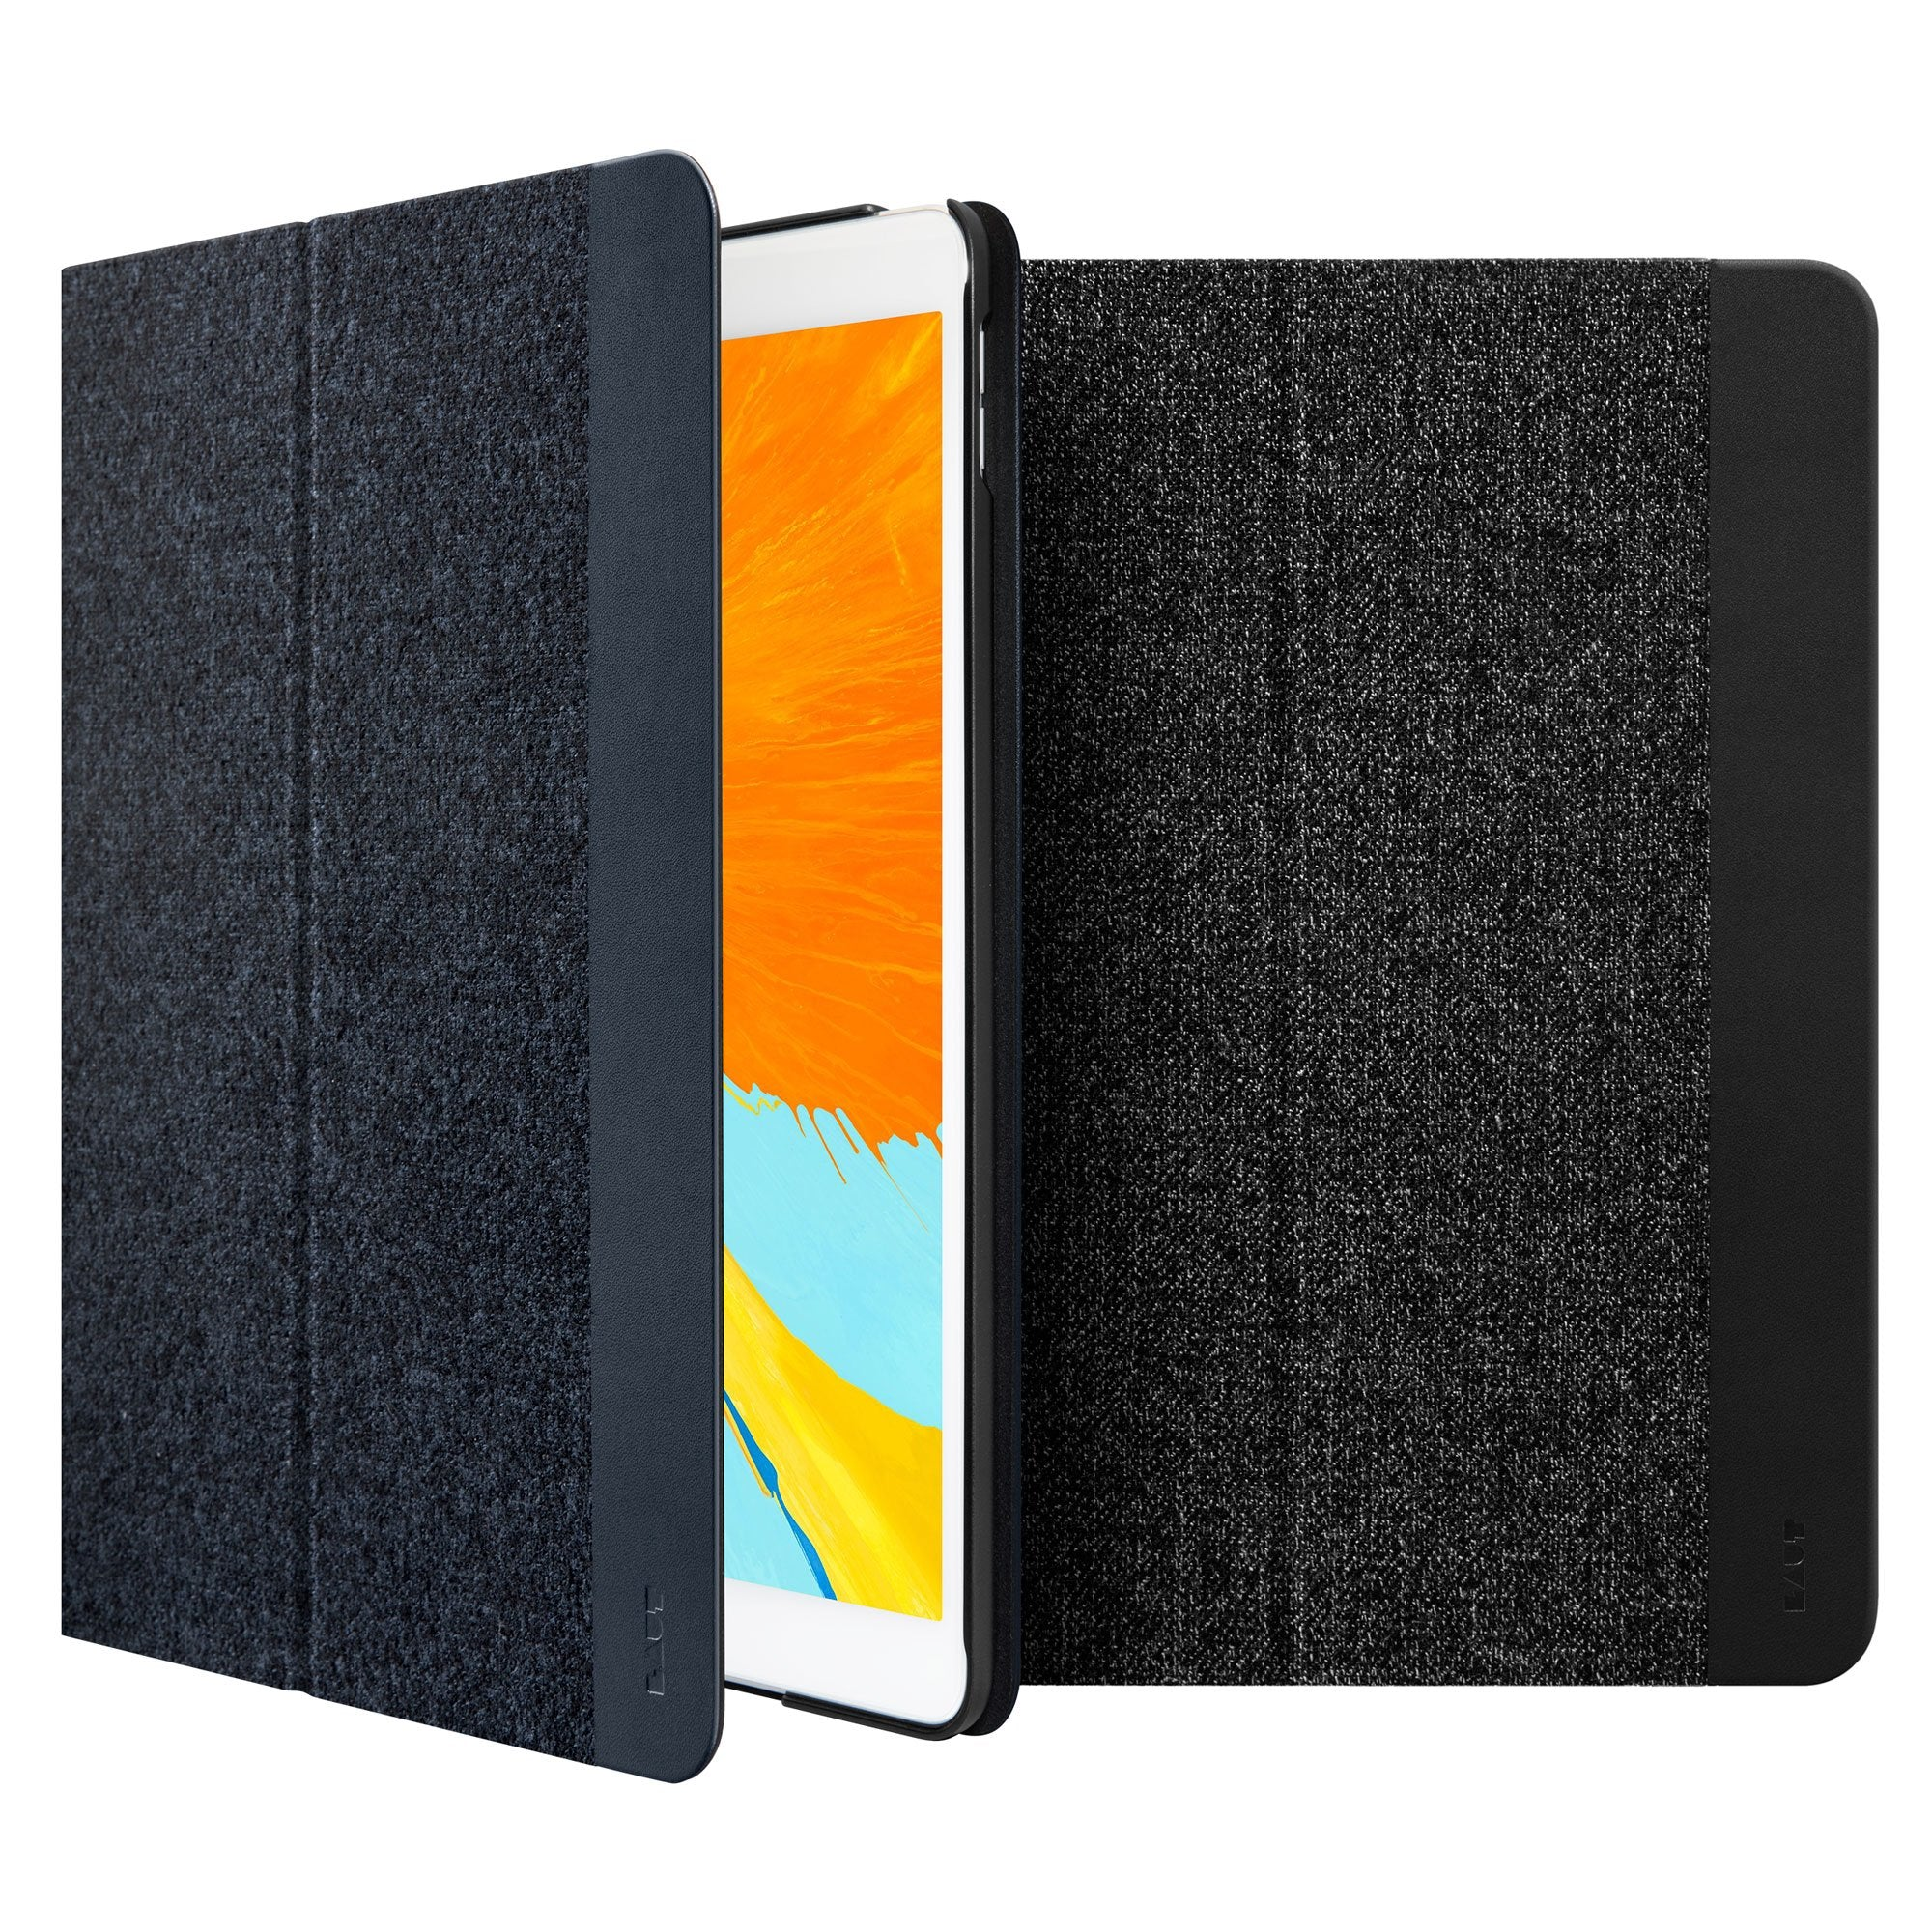 INFLIGHT Folio case for iPad 10.2-inch (2020 / 2019)